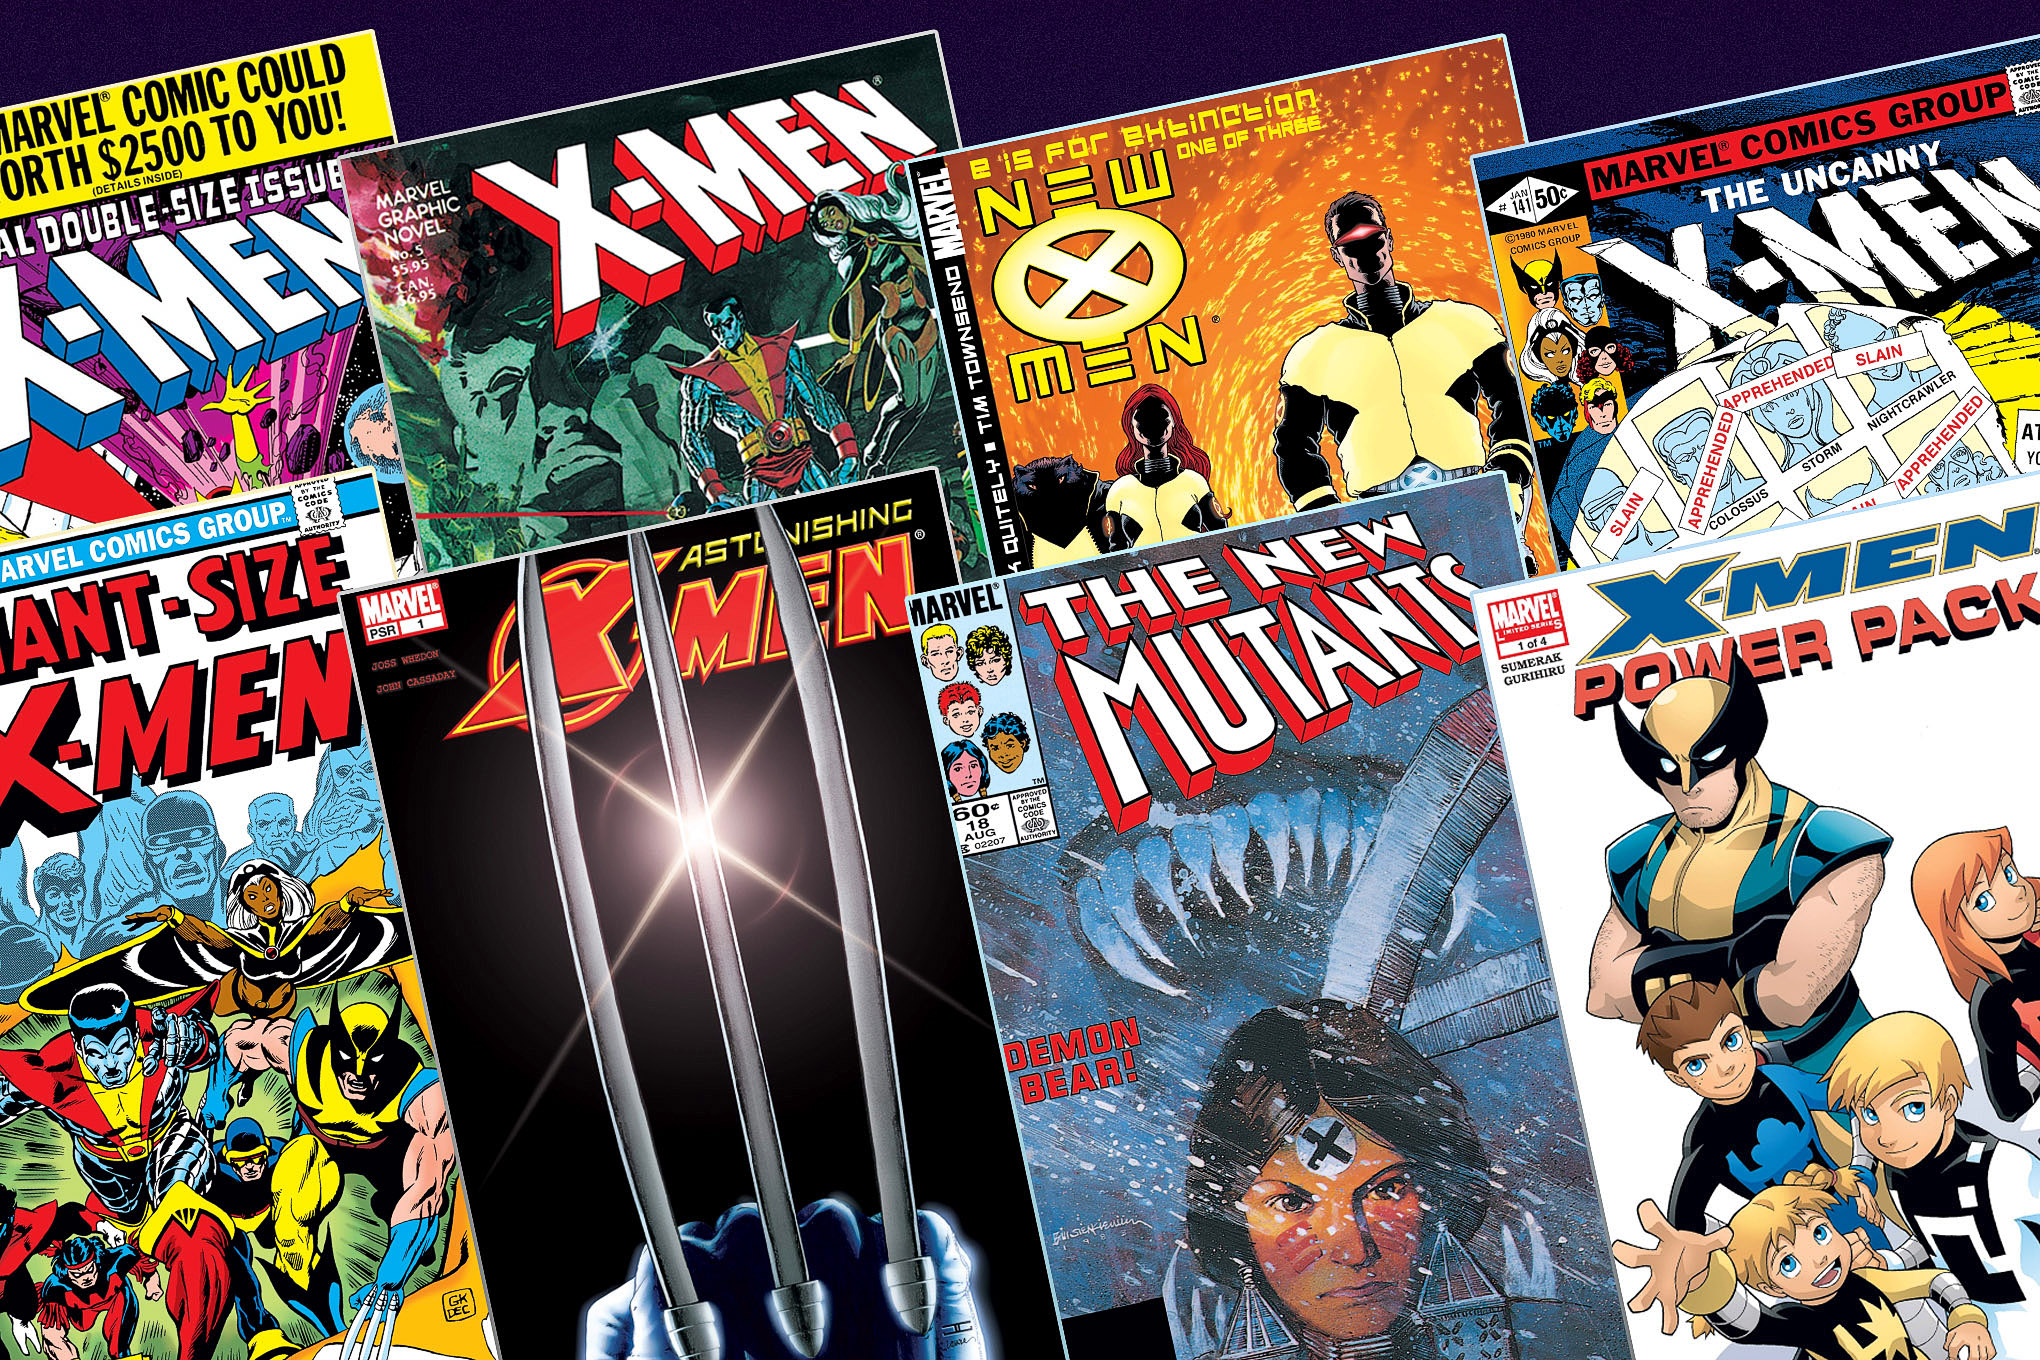 The 9 greatest X-Men stories of all time